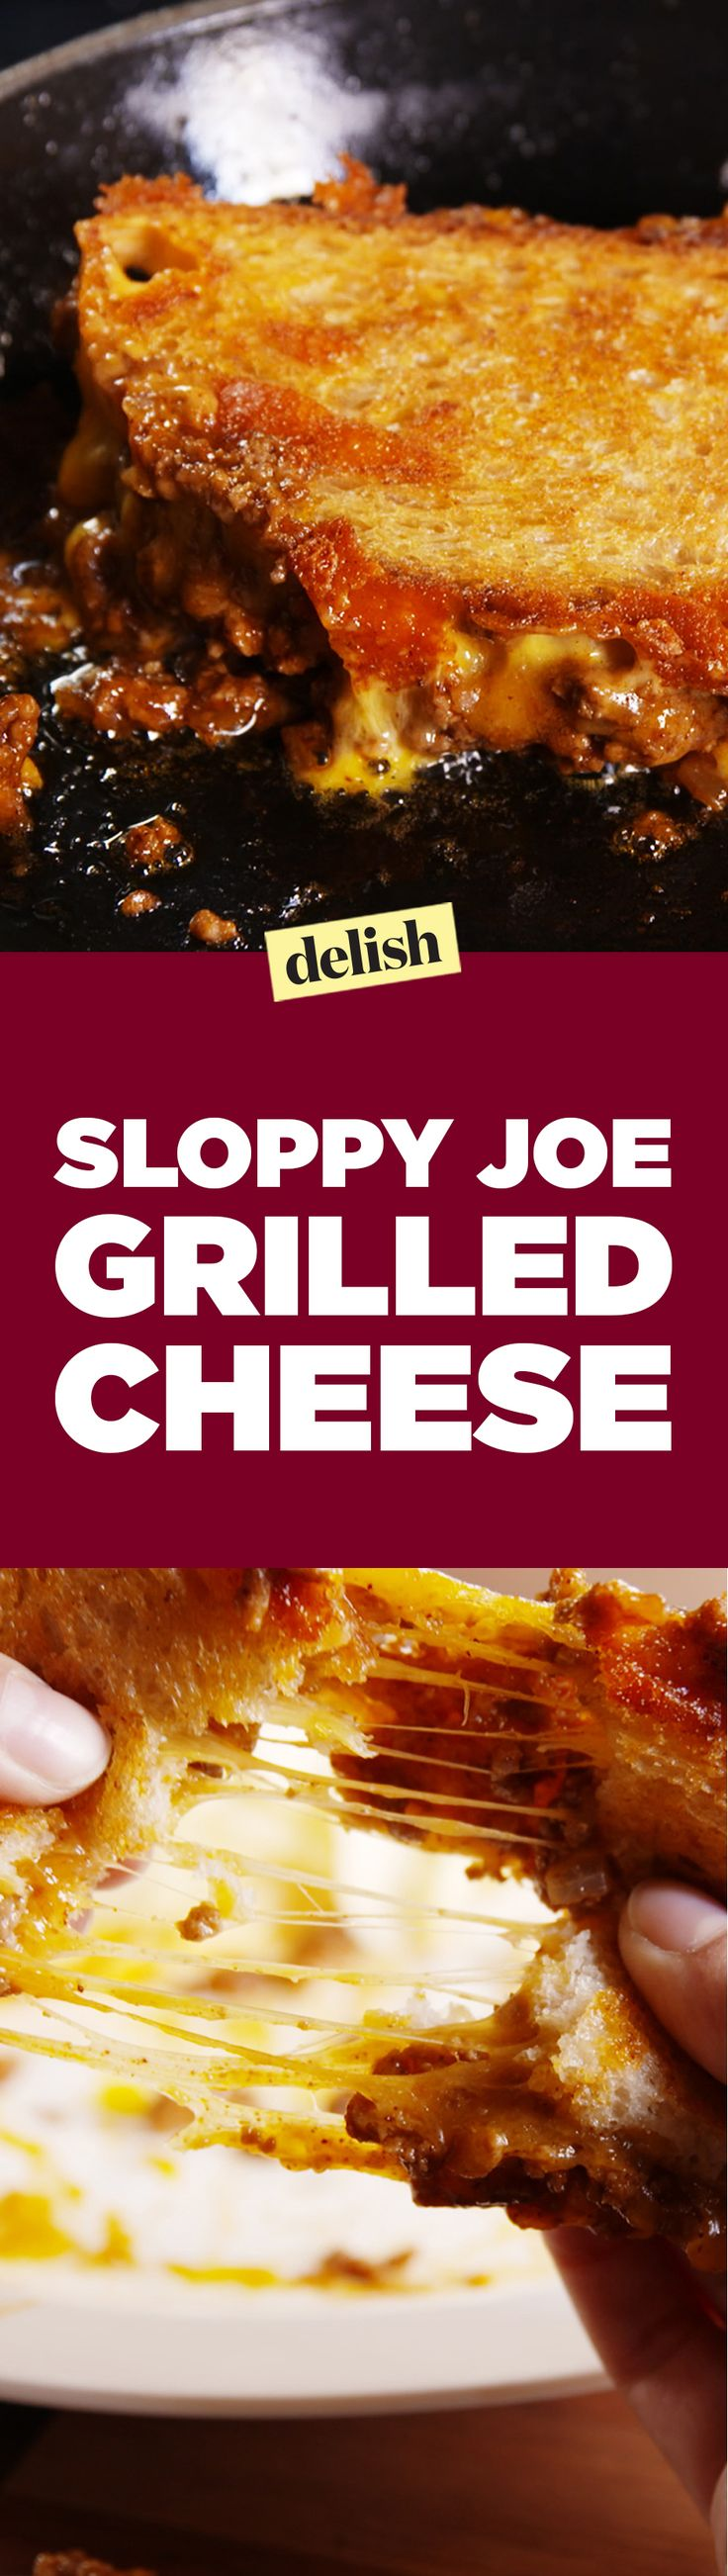 This sloppy joe grilled cheese is what happens when your two favorite childhood sandwiches become one. Get the recipe on Delish.com.